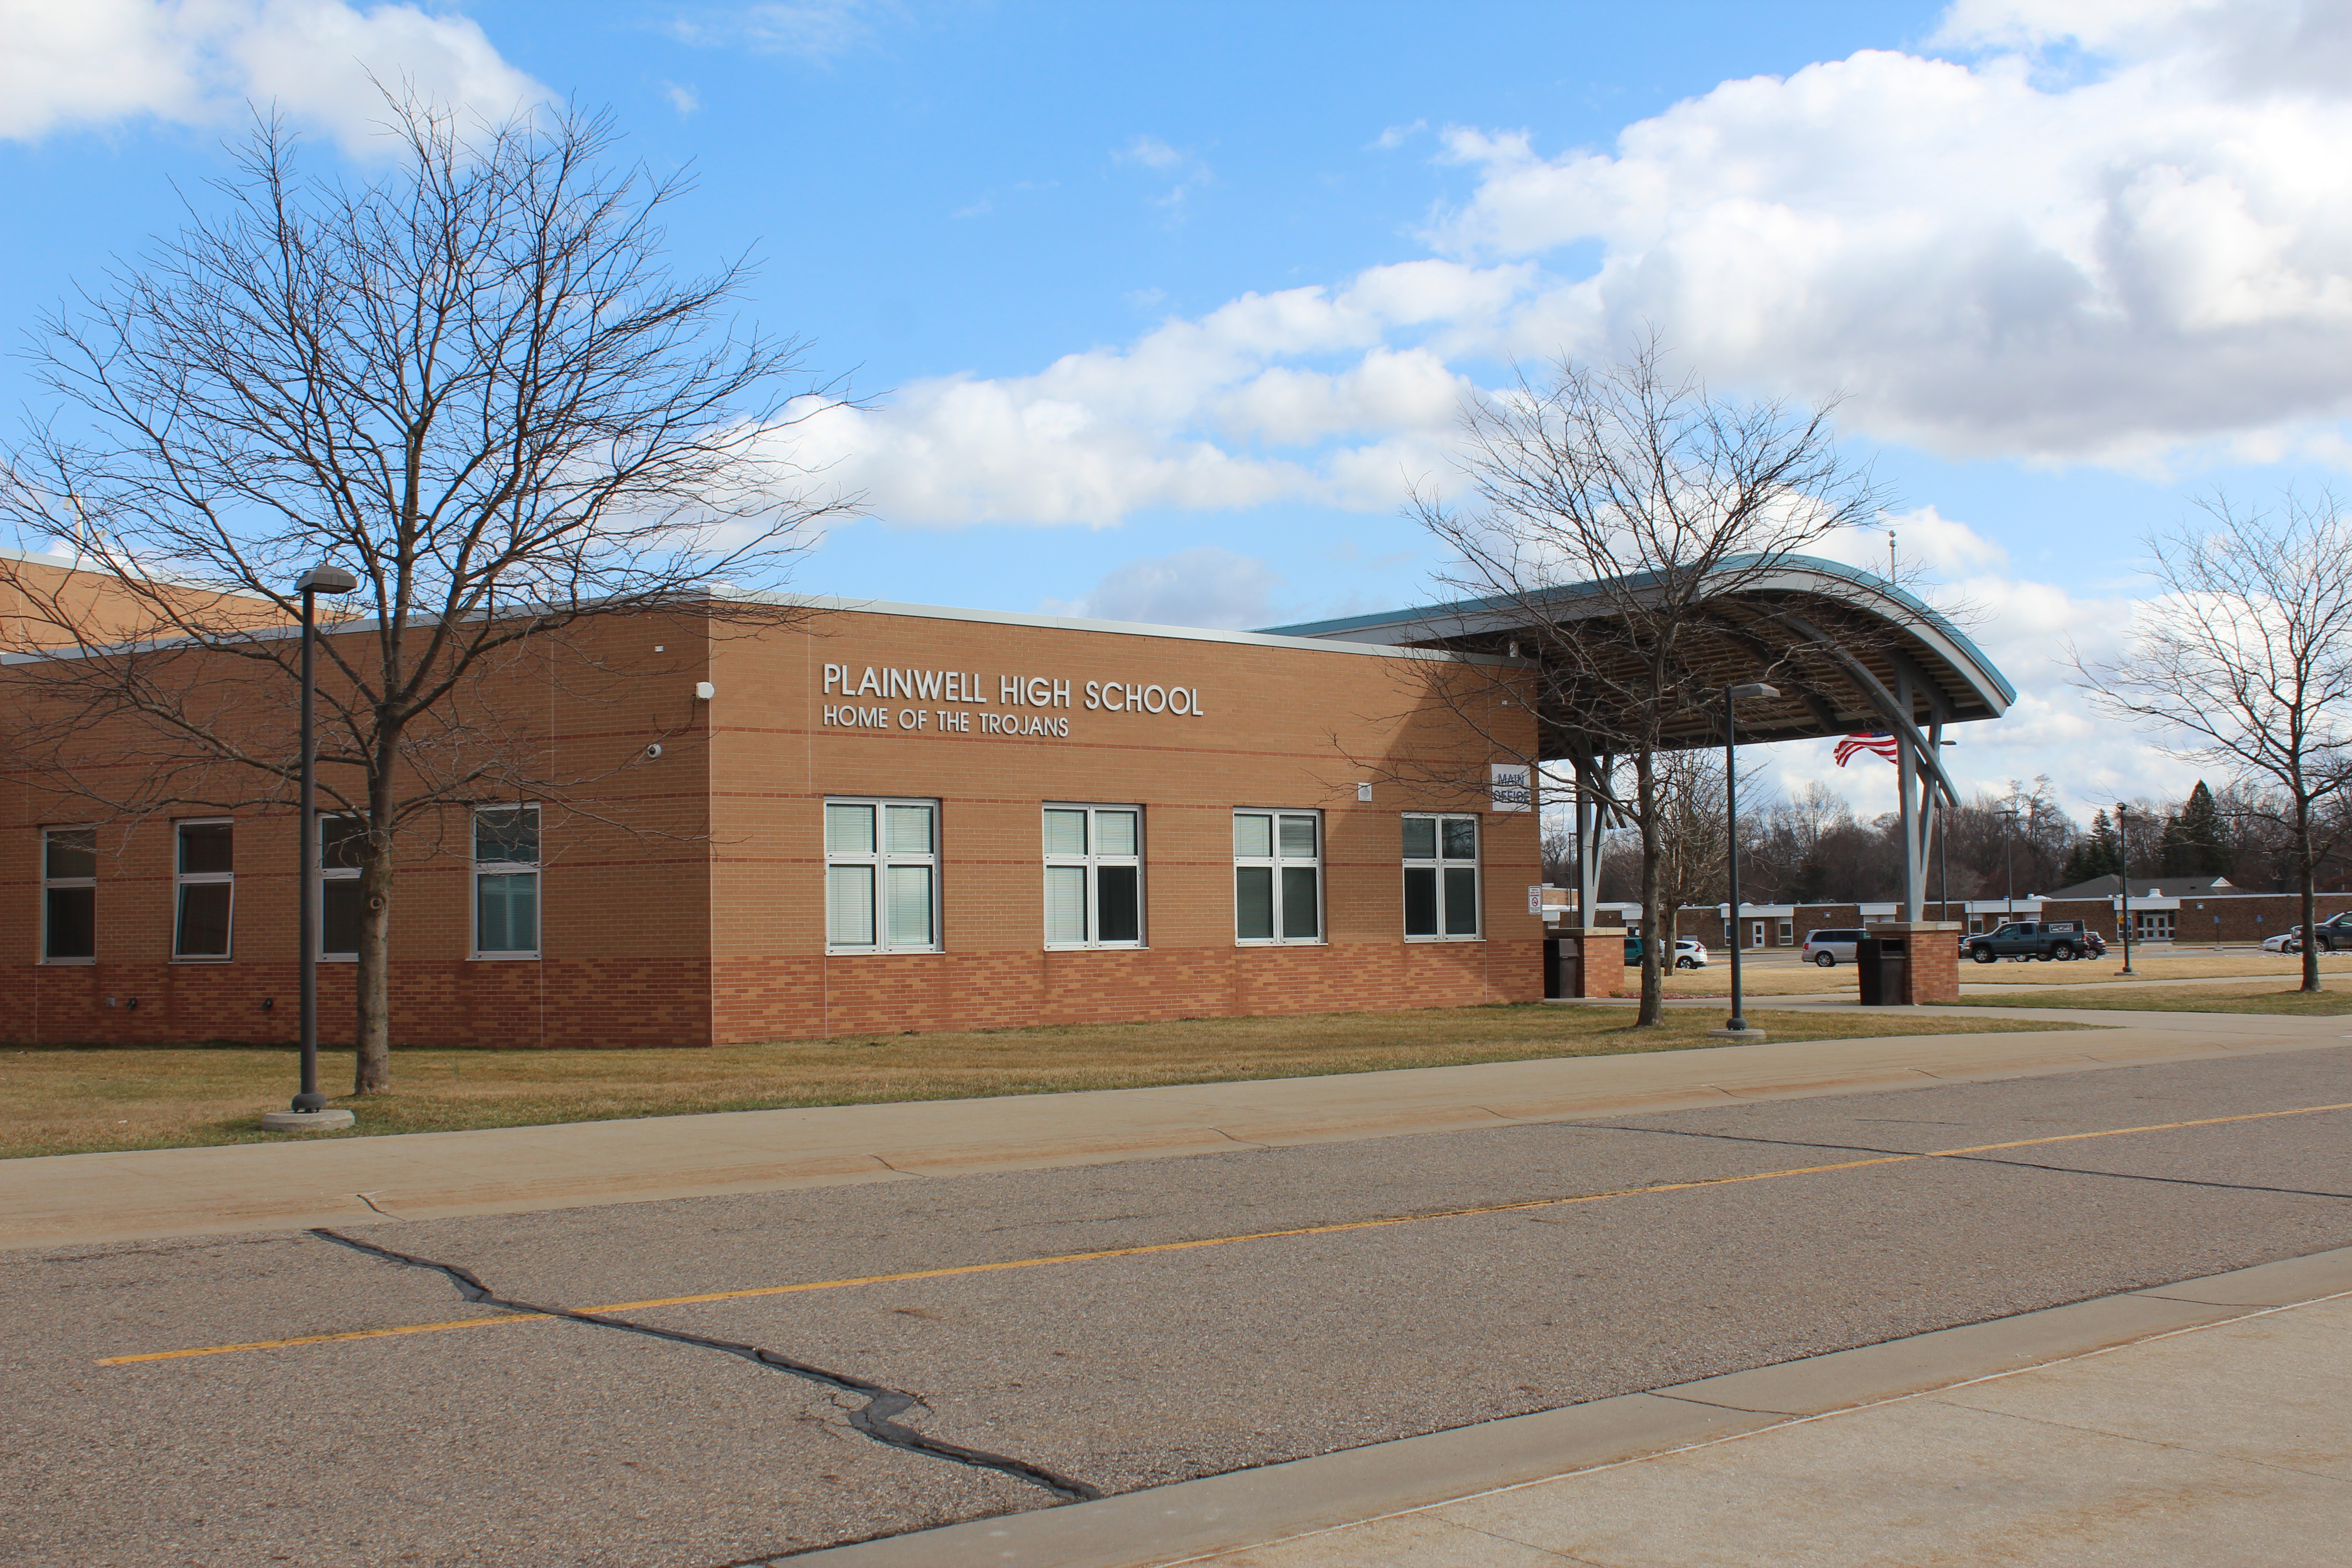 Picture of outside of Plainwell High School main entrance